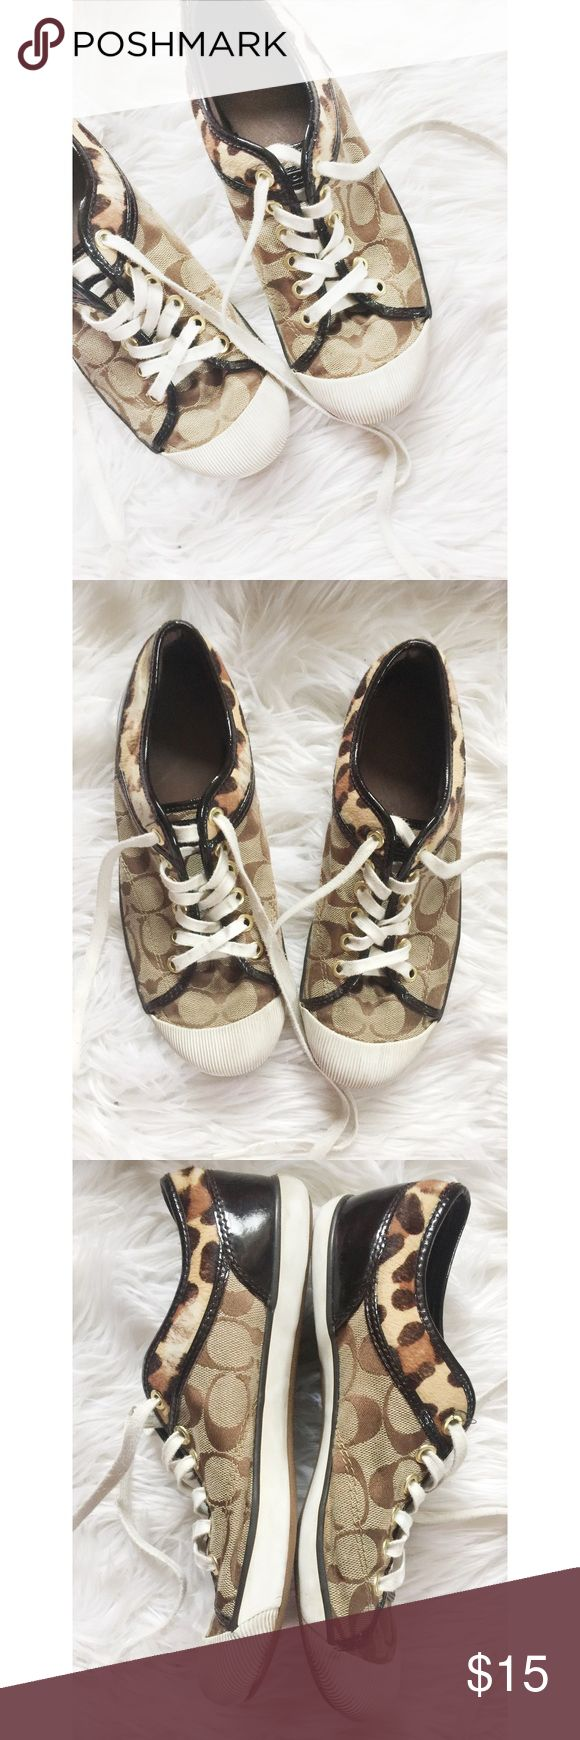 Coach Sneakers Coach Sneakers.  Good used condition.  Signs of wear on the calf hair trim and soles as pictured.  Could use some new shoes laces, I JUST washed them before posting but they are still a little dingy.  Women's size 8B.  Smoke free environment.  No box. Coach Shoes Sneakers